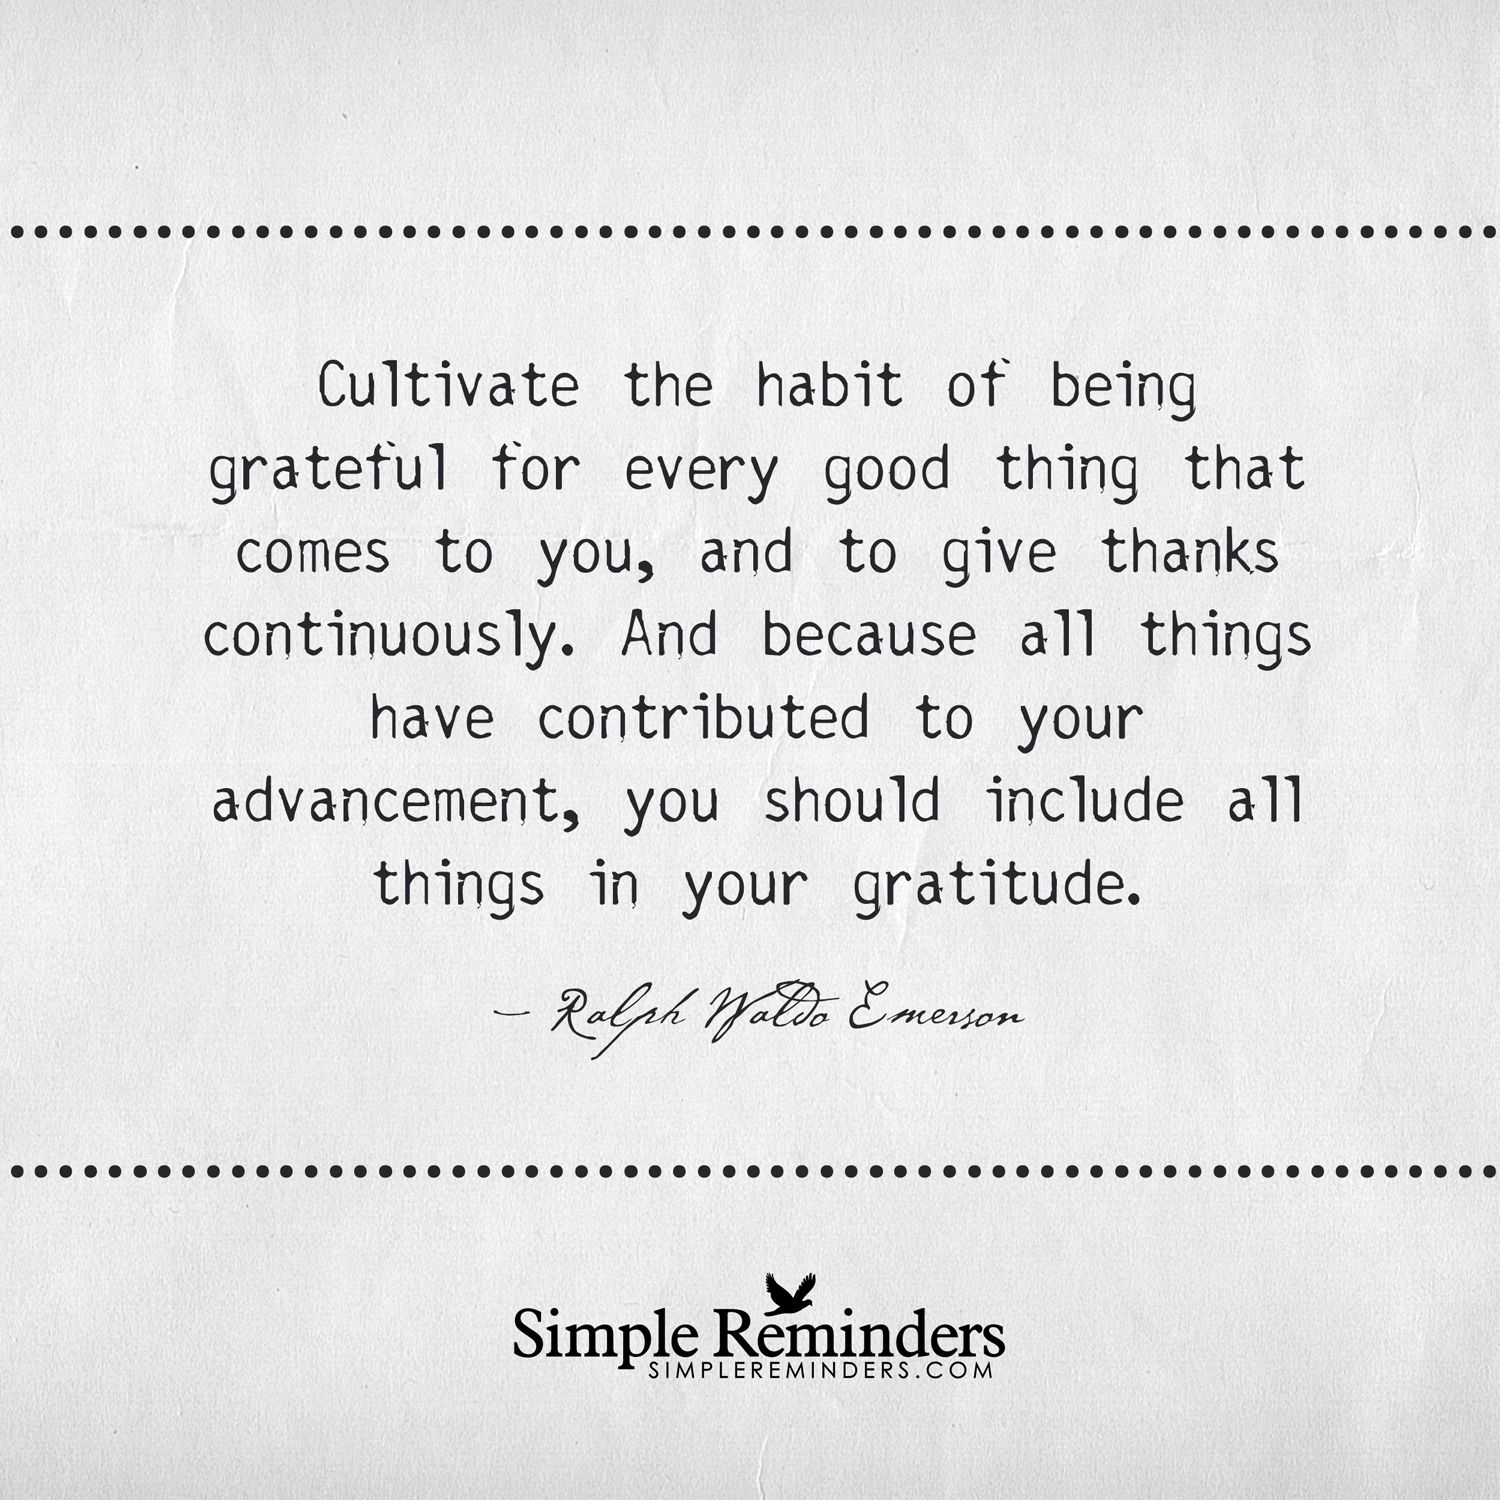 simple reminders new posts for 01 10 2015 life quotes quote by ralph waldo emerson cultivate the habit of being grateful for every good thing that comes to you and to give thanks continuously